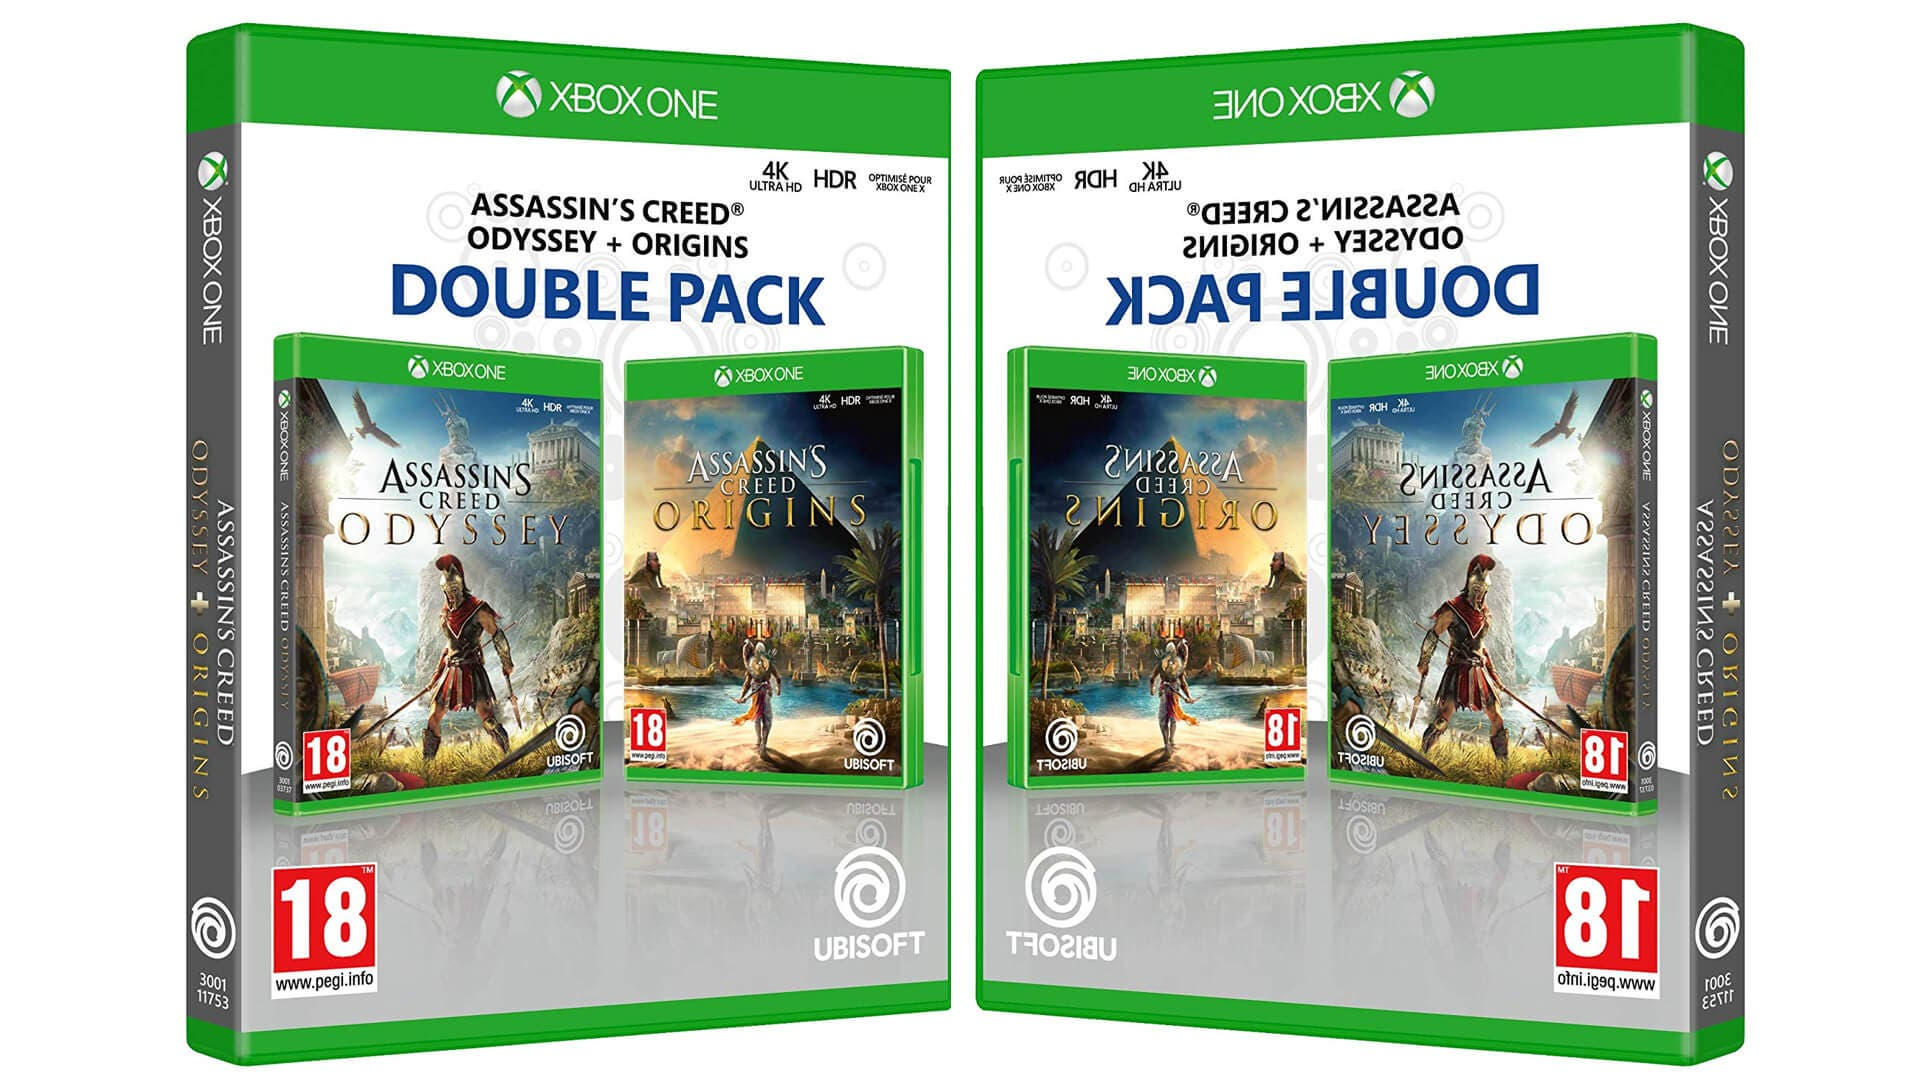 Gran oferta de Doble Pack Assassin's Creed Origins + Odyssey para Xbox 4